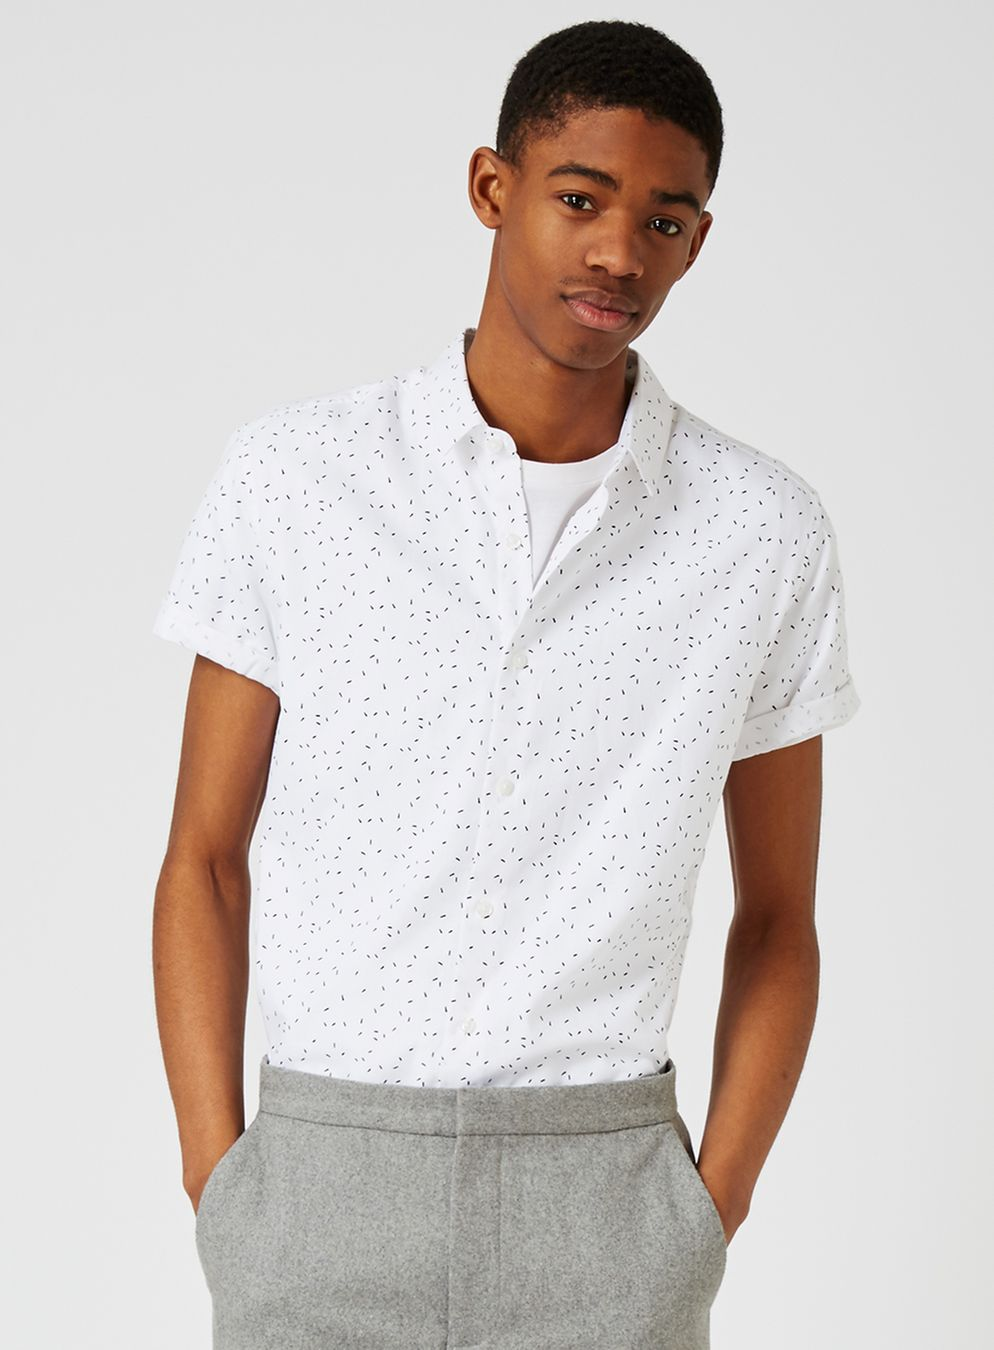 4. Topman - $50   White and Black Flecked Shirt